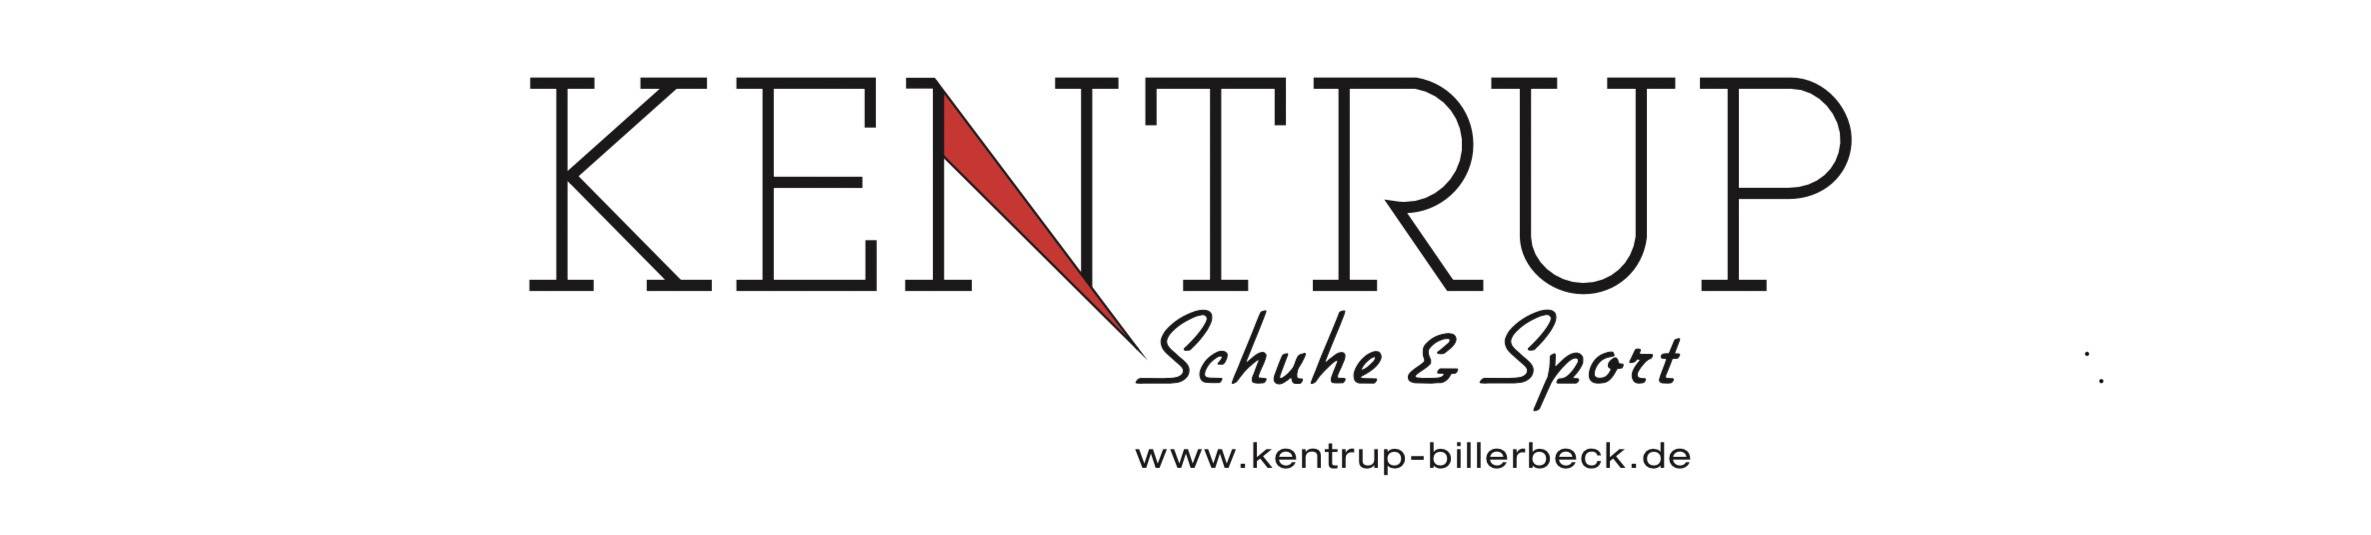 www.kentrup-billerbeck.de